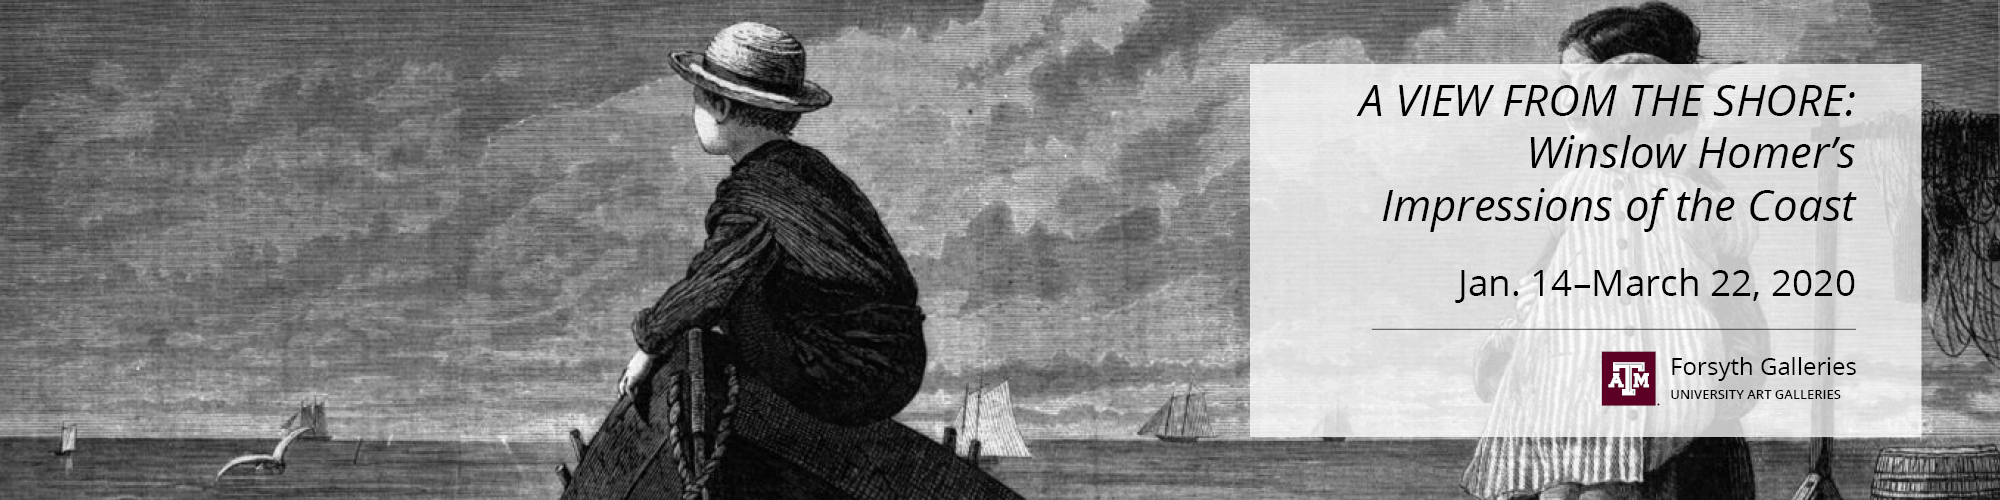 Black and white drawing of boy sitting on boat watching the shore.